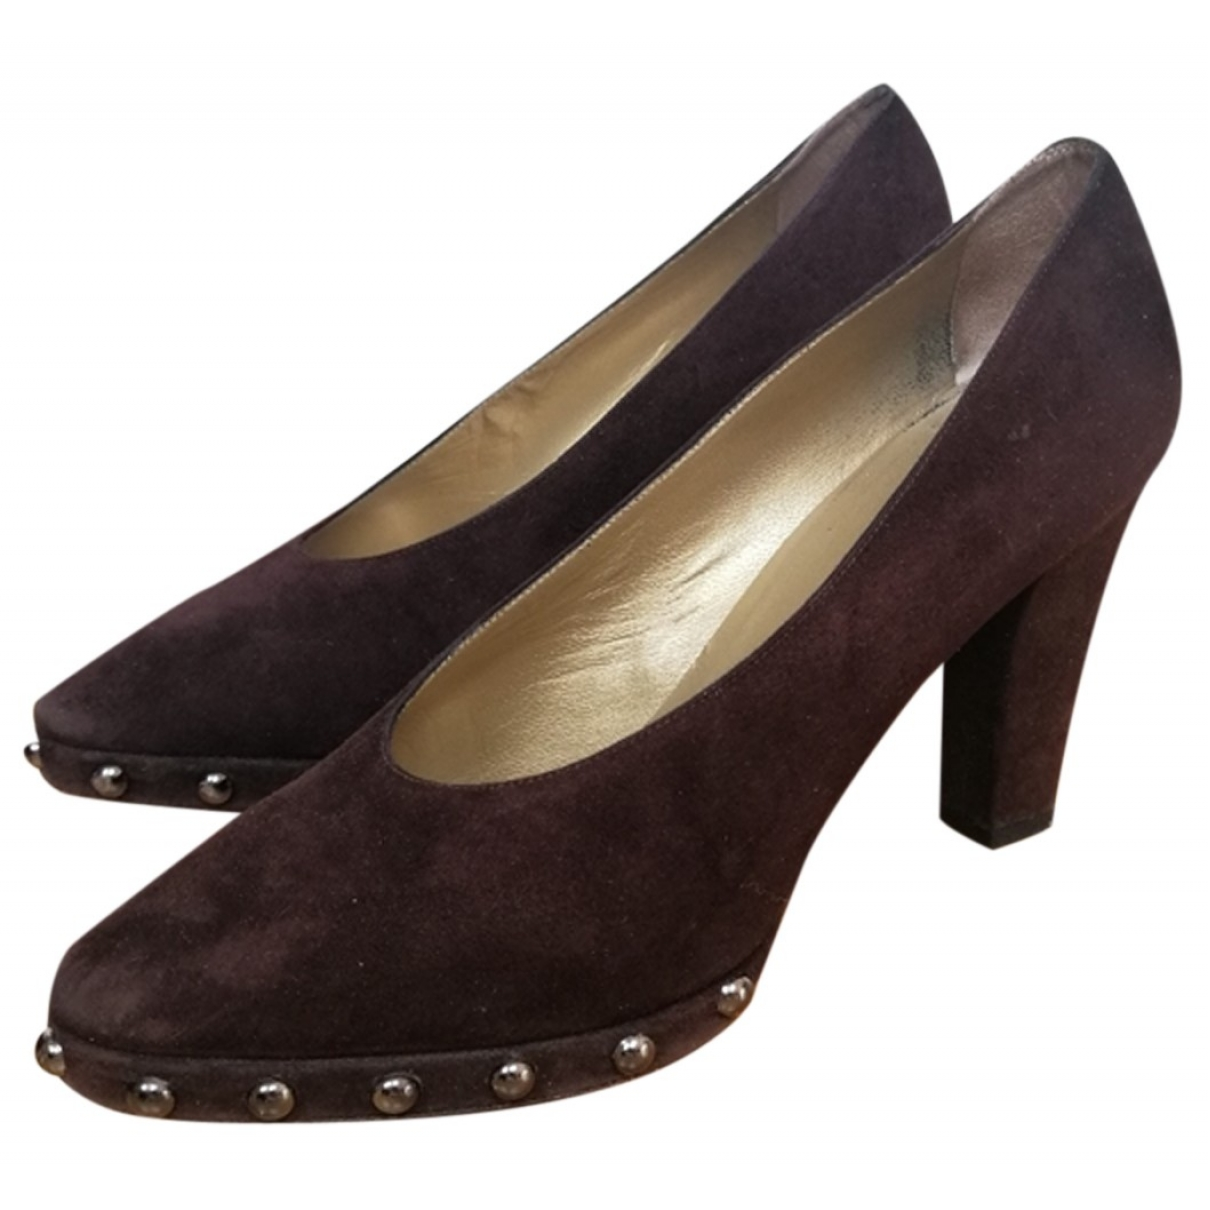 Yves Saint Laurent \N Brown Suede Heels for Women 8 US